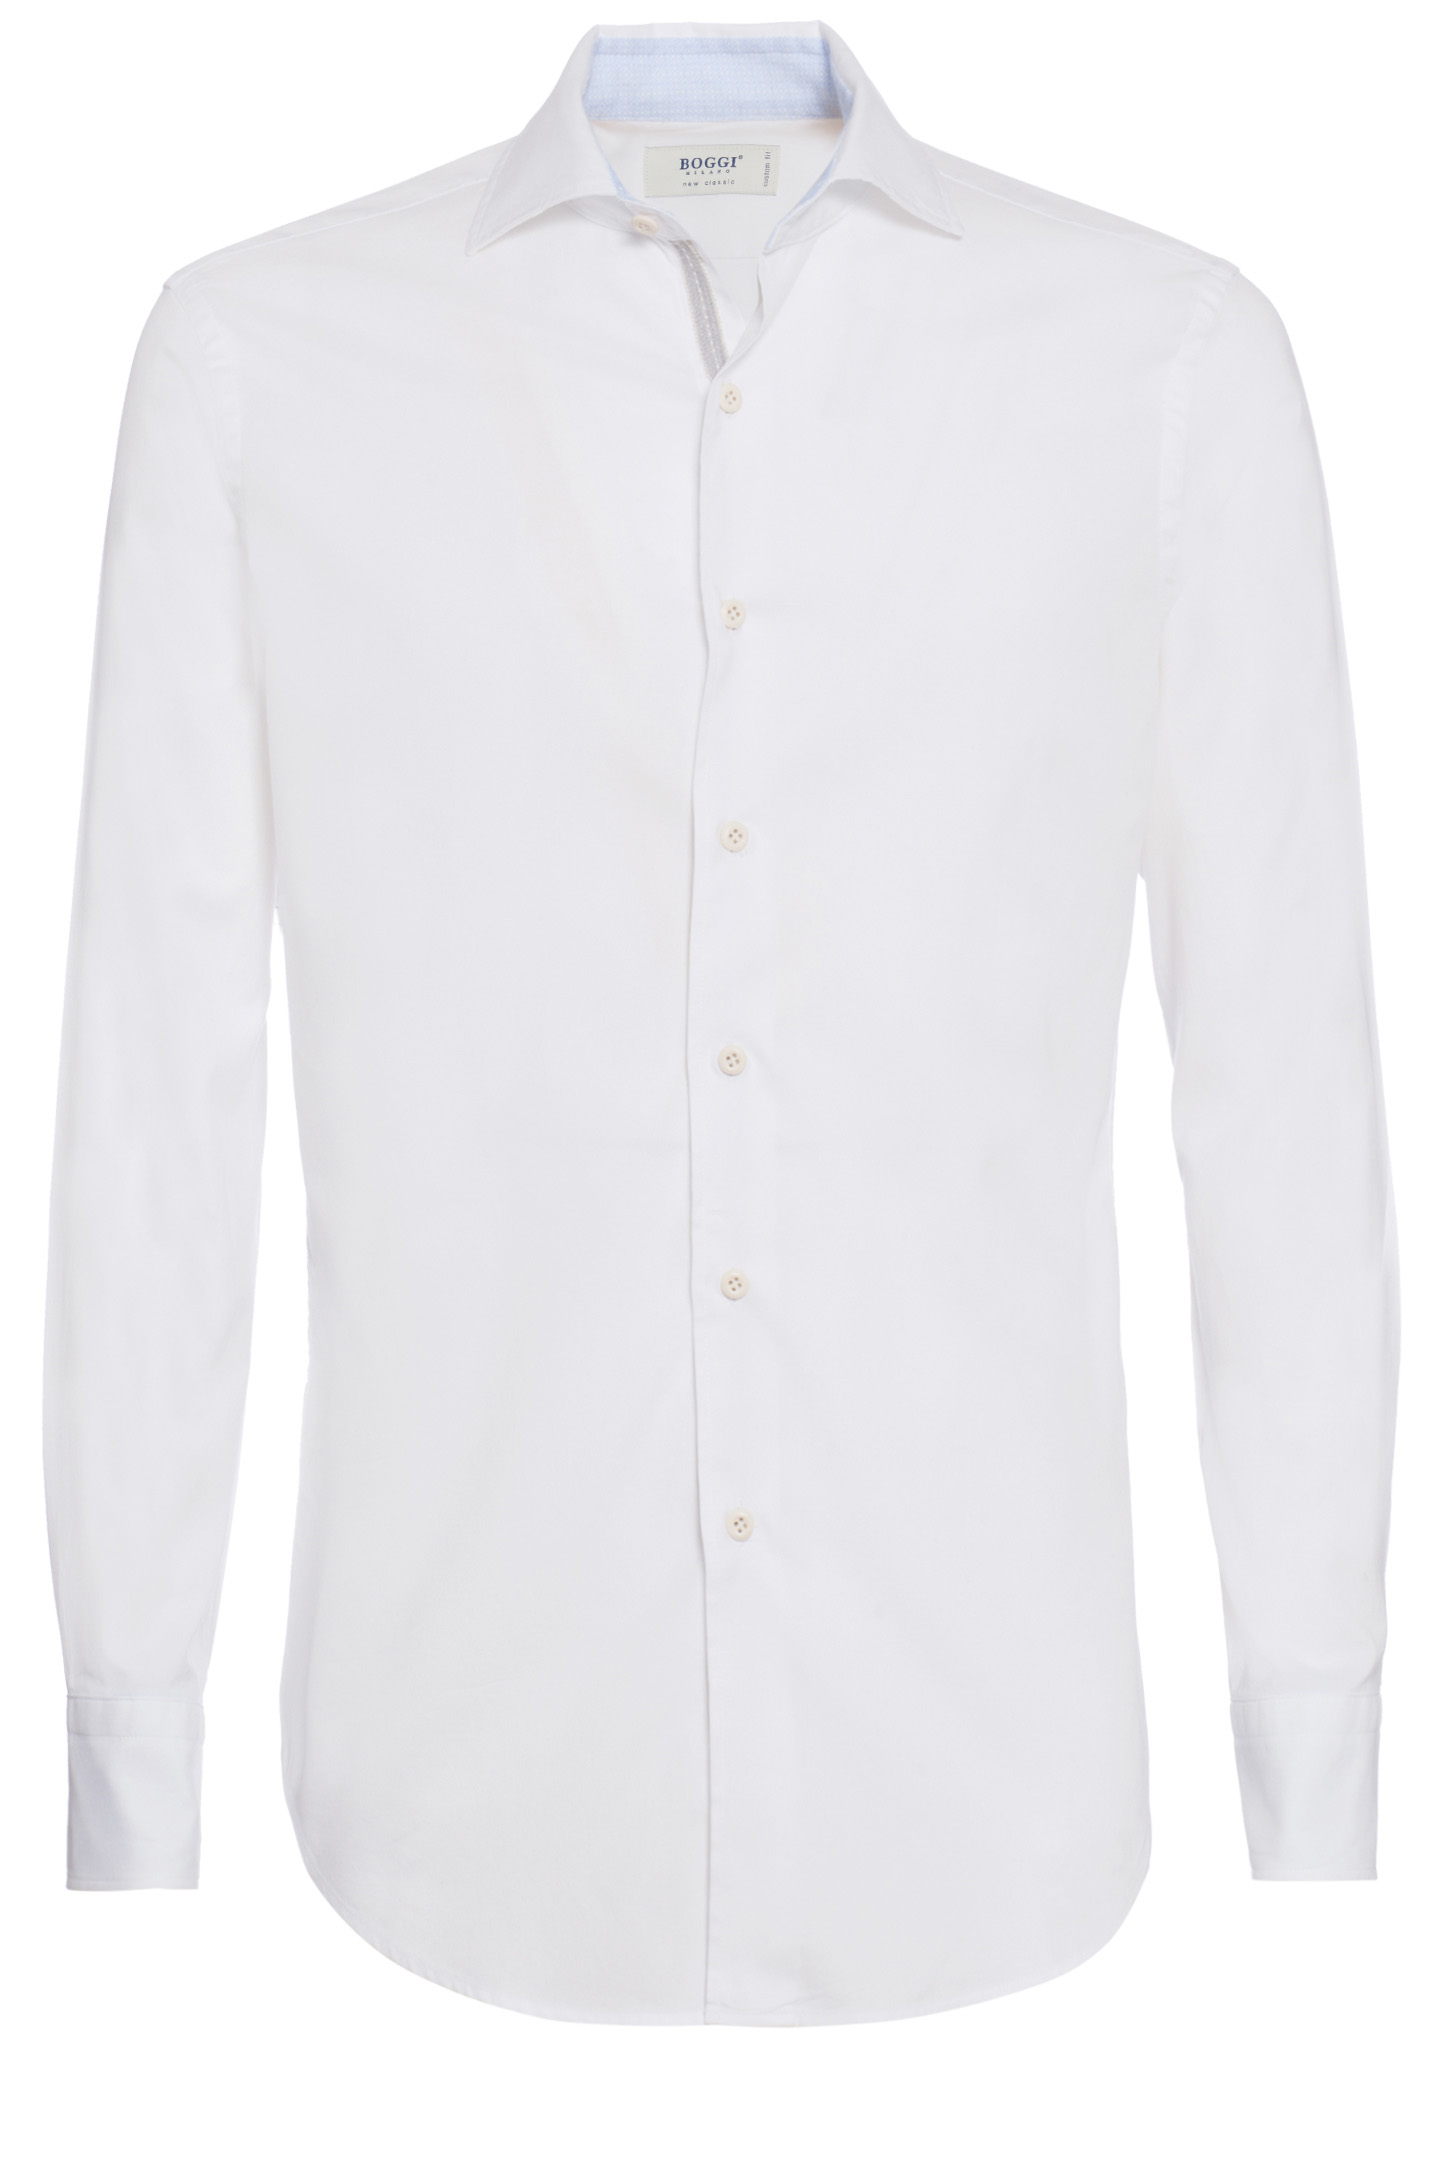 Custom Fit Shirt In Pin Point Cotton With Soft Collar